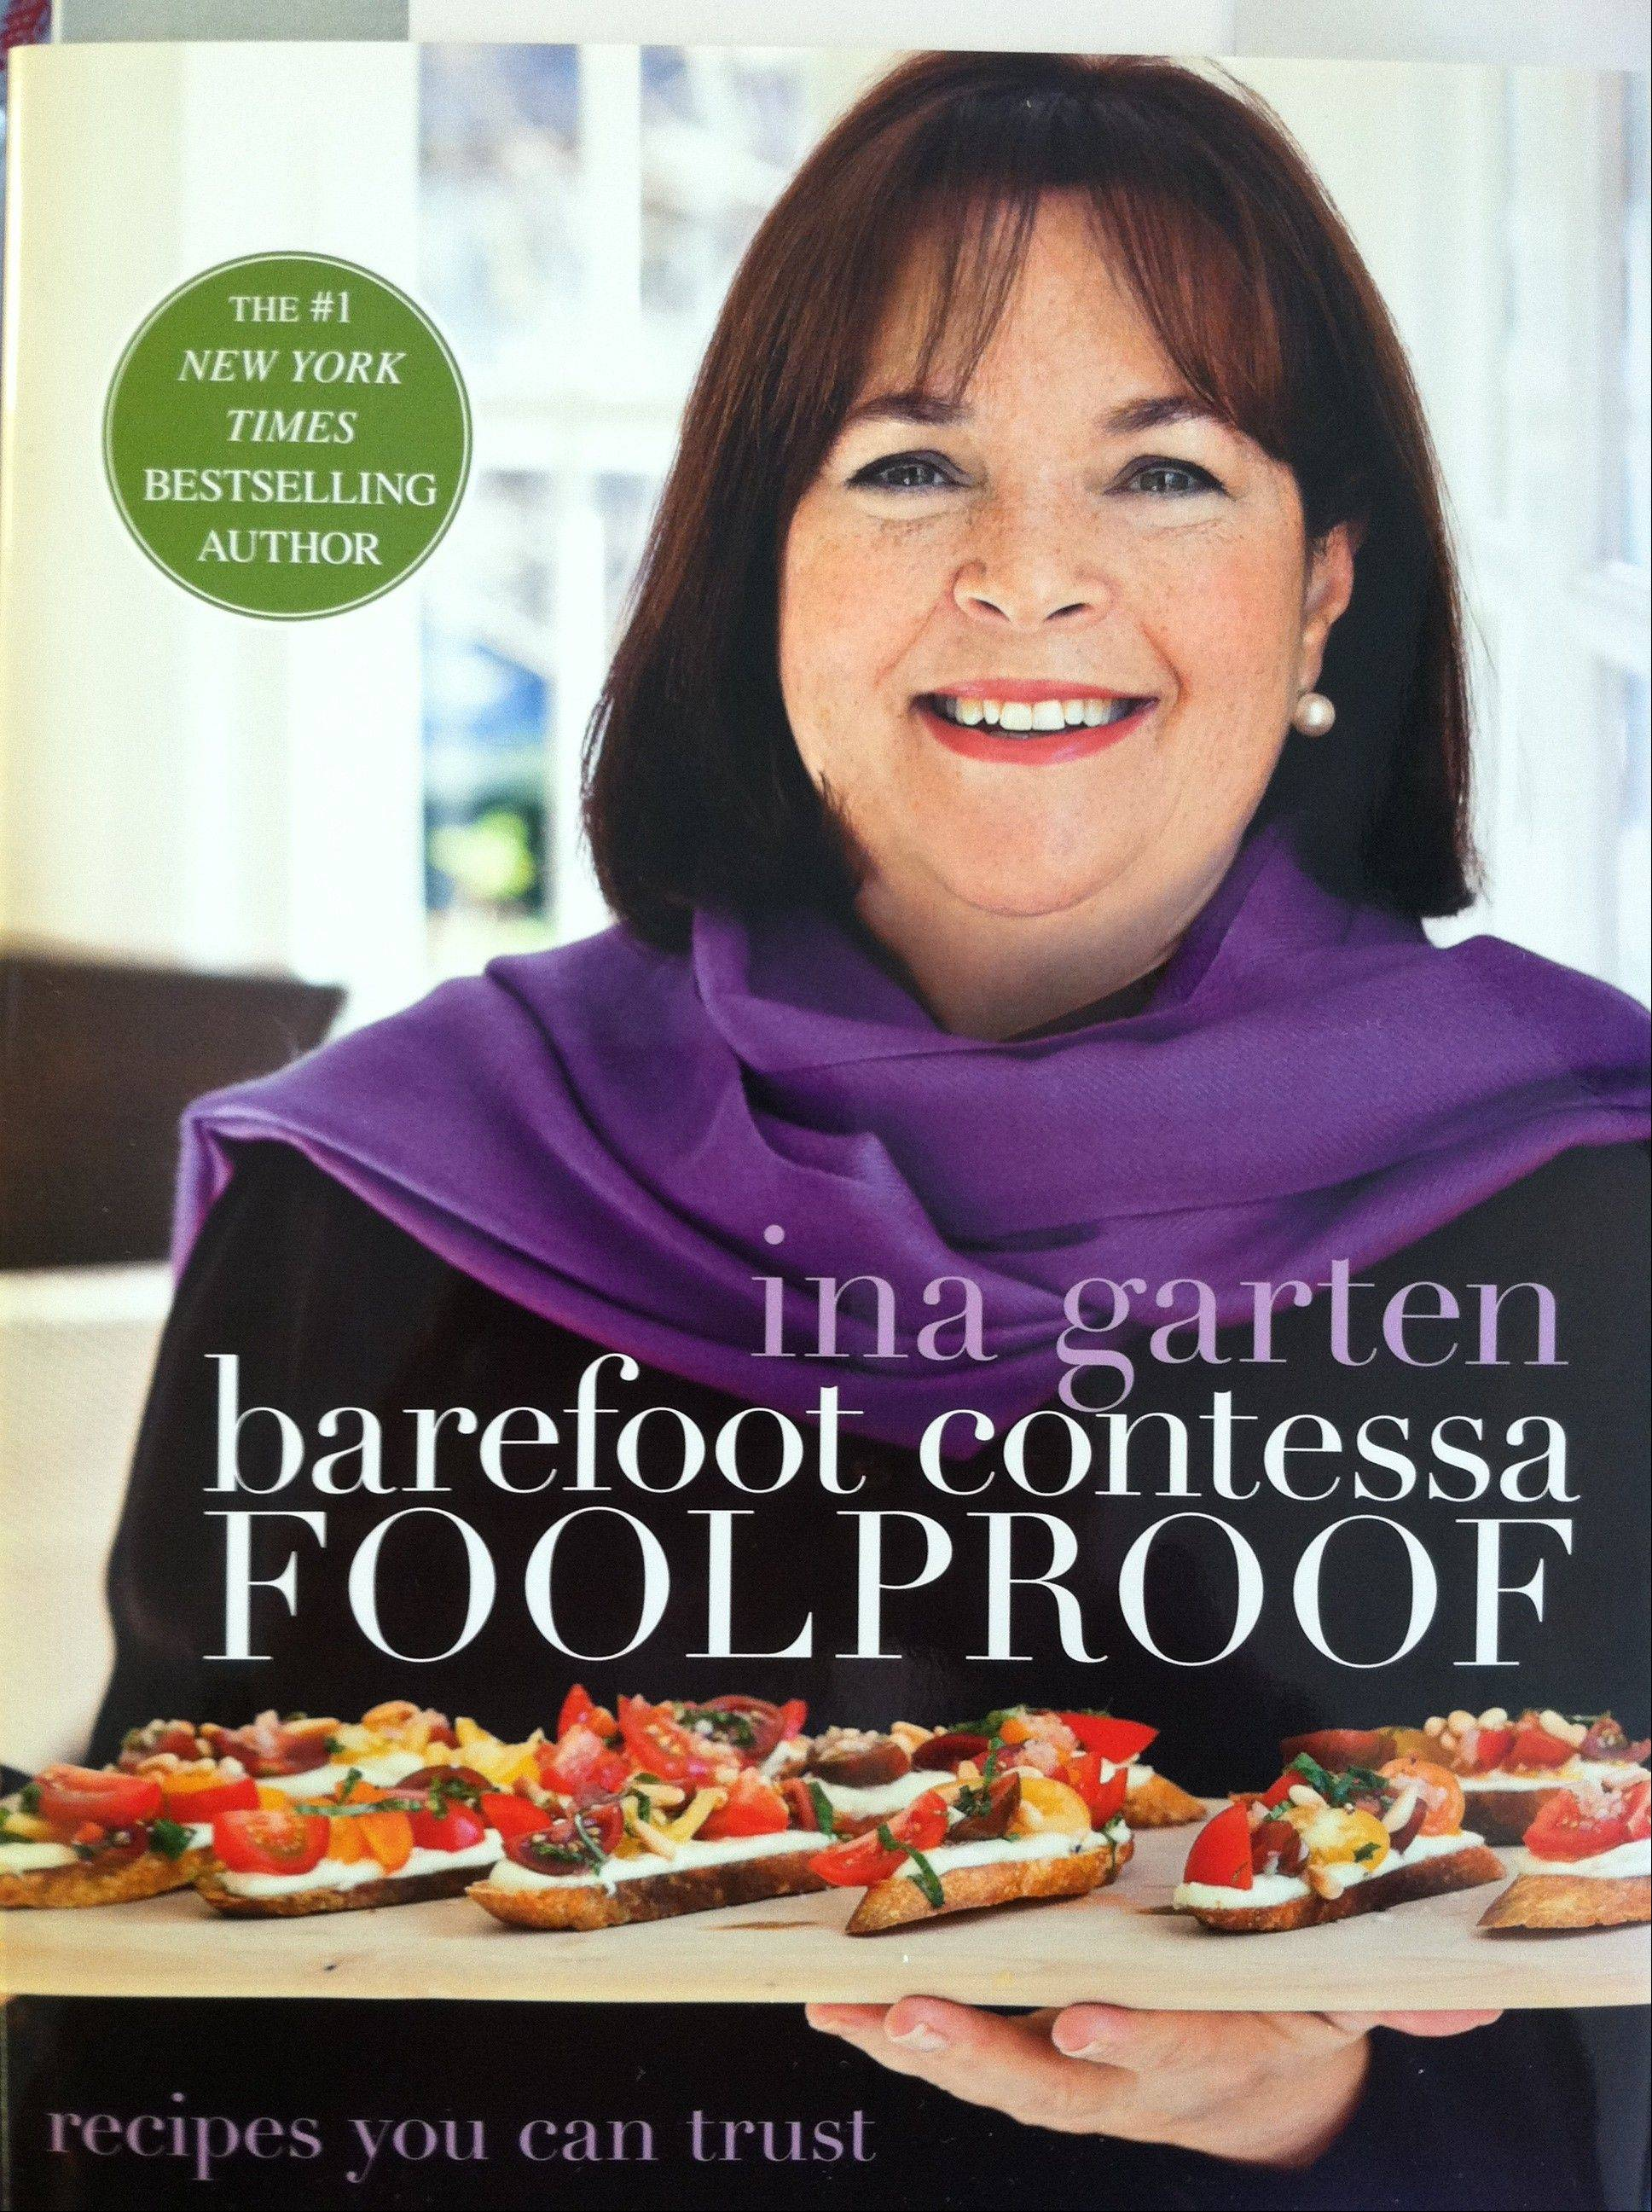 Ina Garten still barefoot and (almost) foolproof